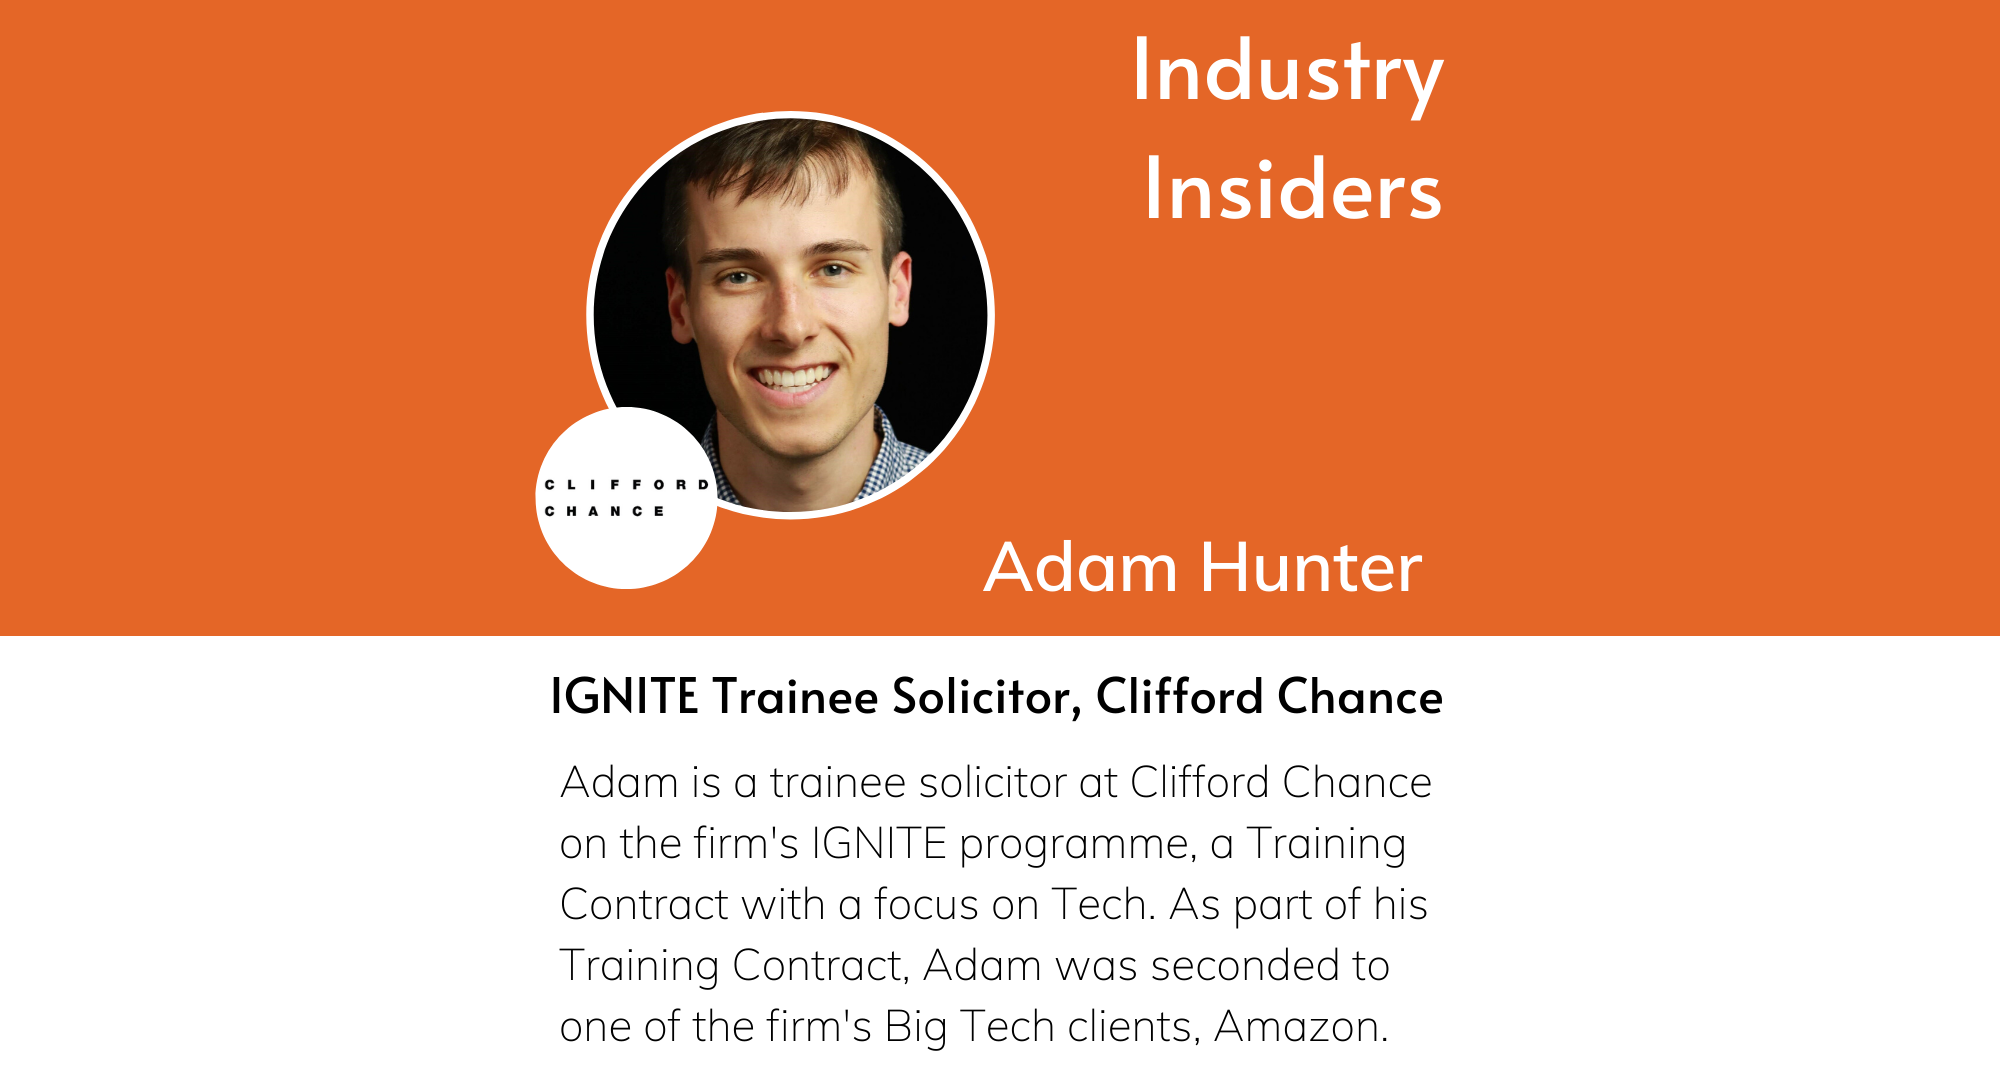 Industry Insiders - IGNITE Clifford Chance